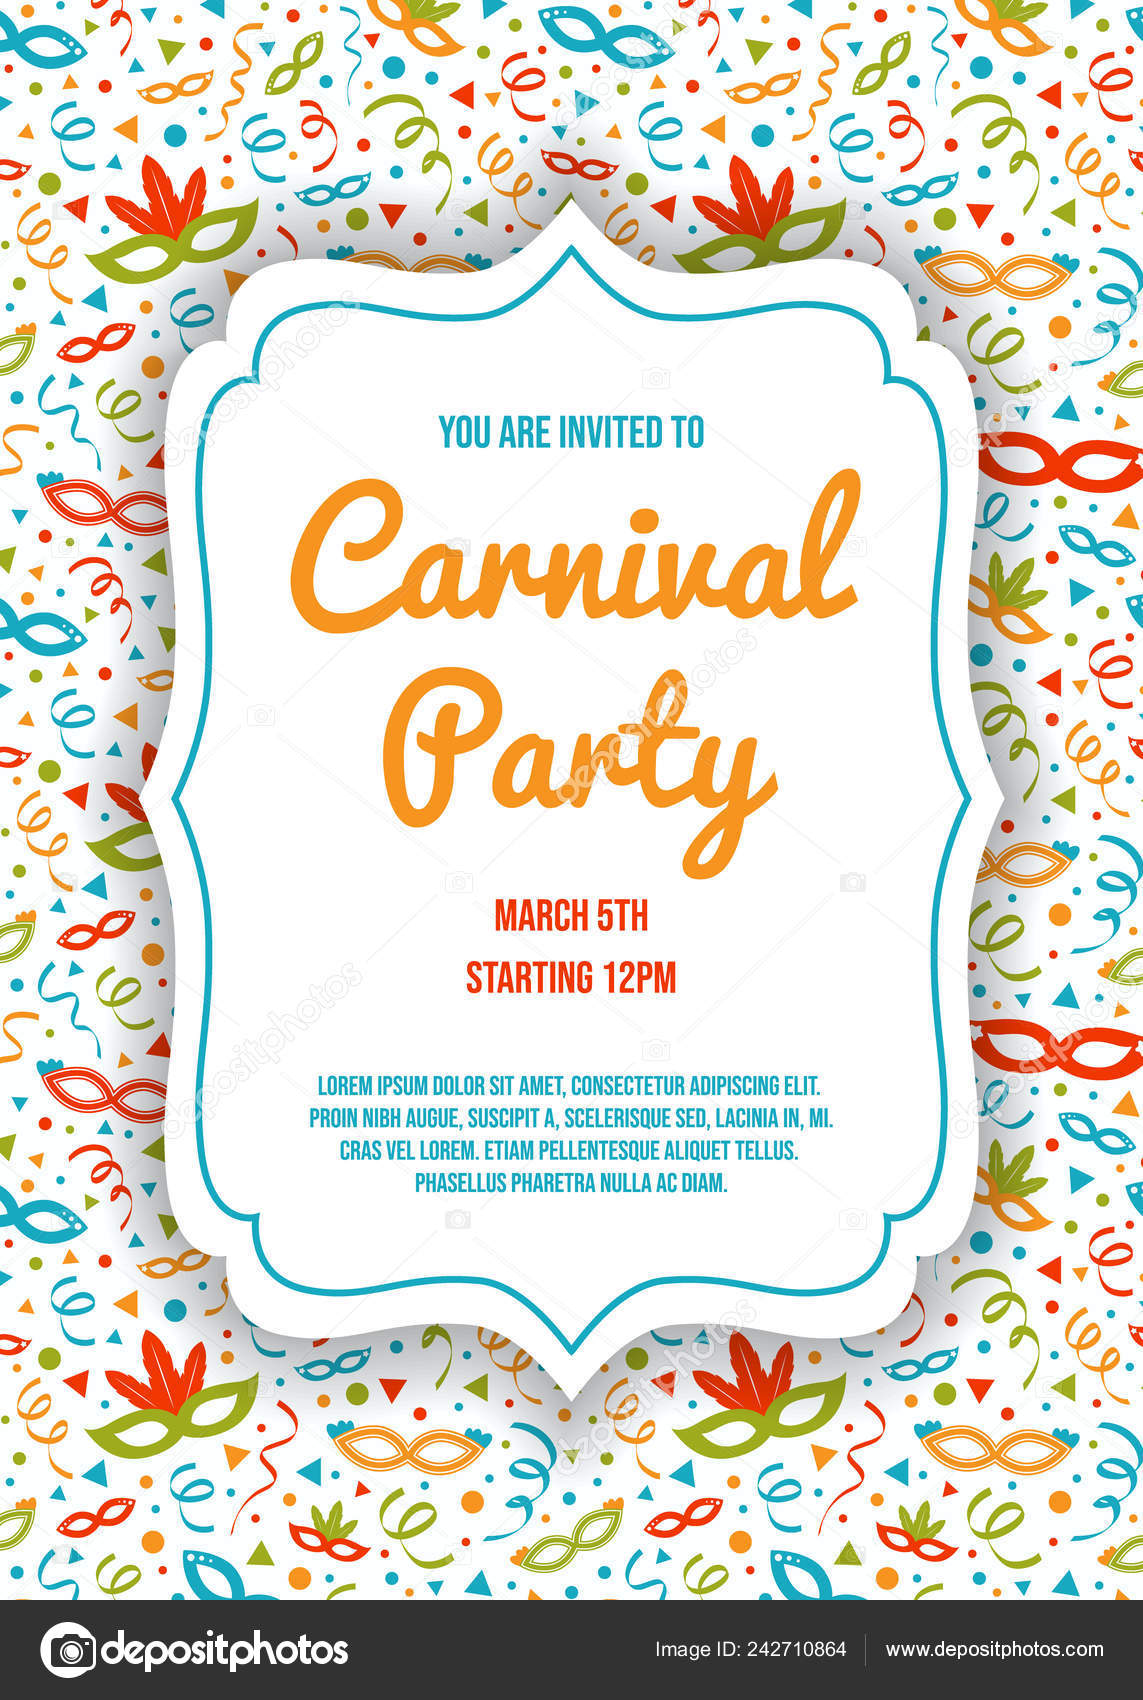 Concept Carnival Party Invitation Card Colorful Background